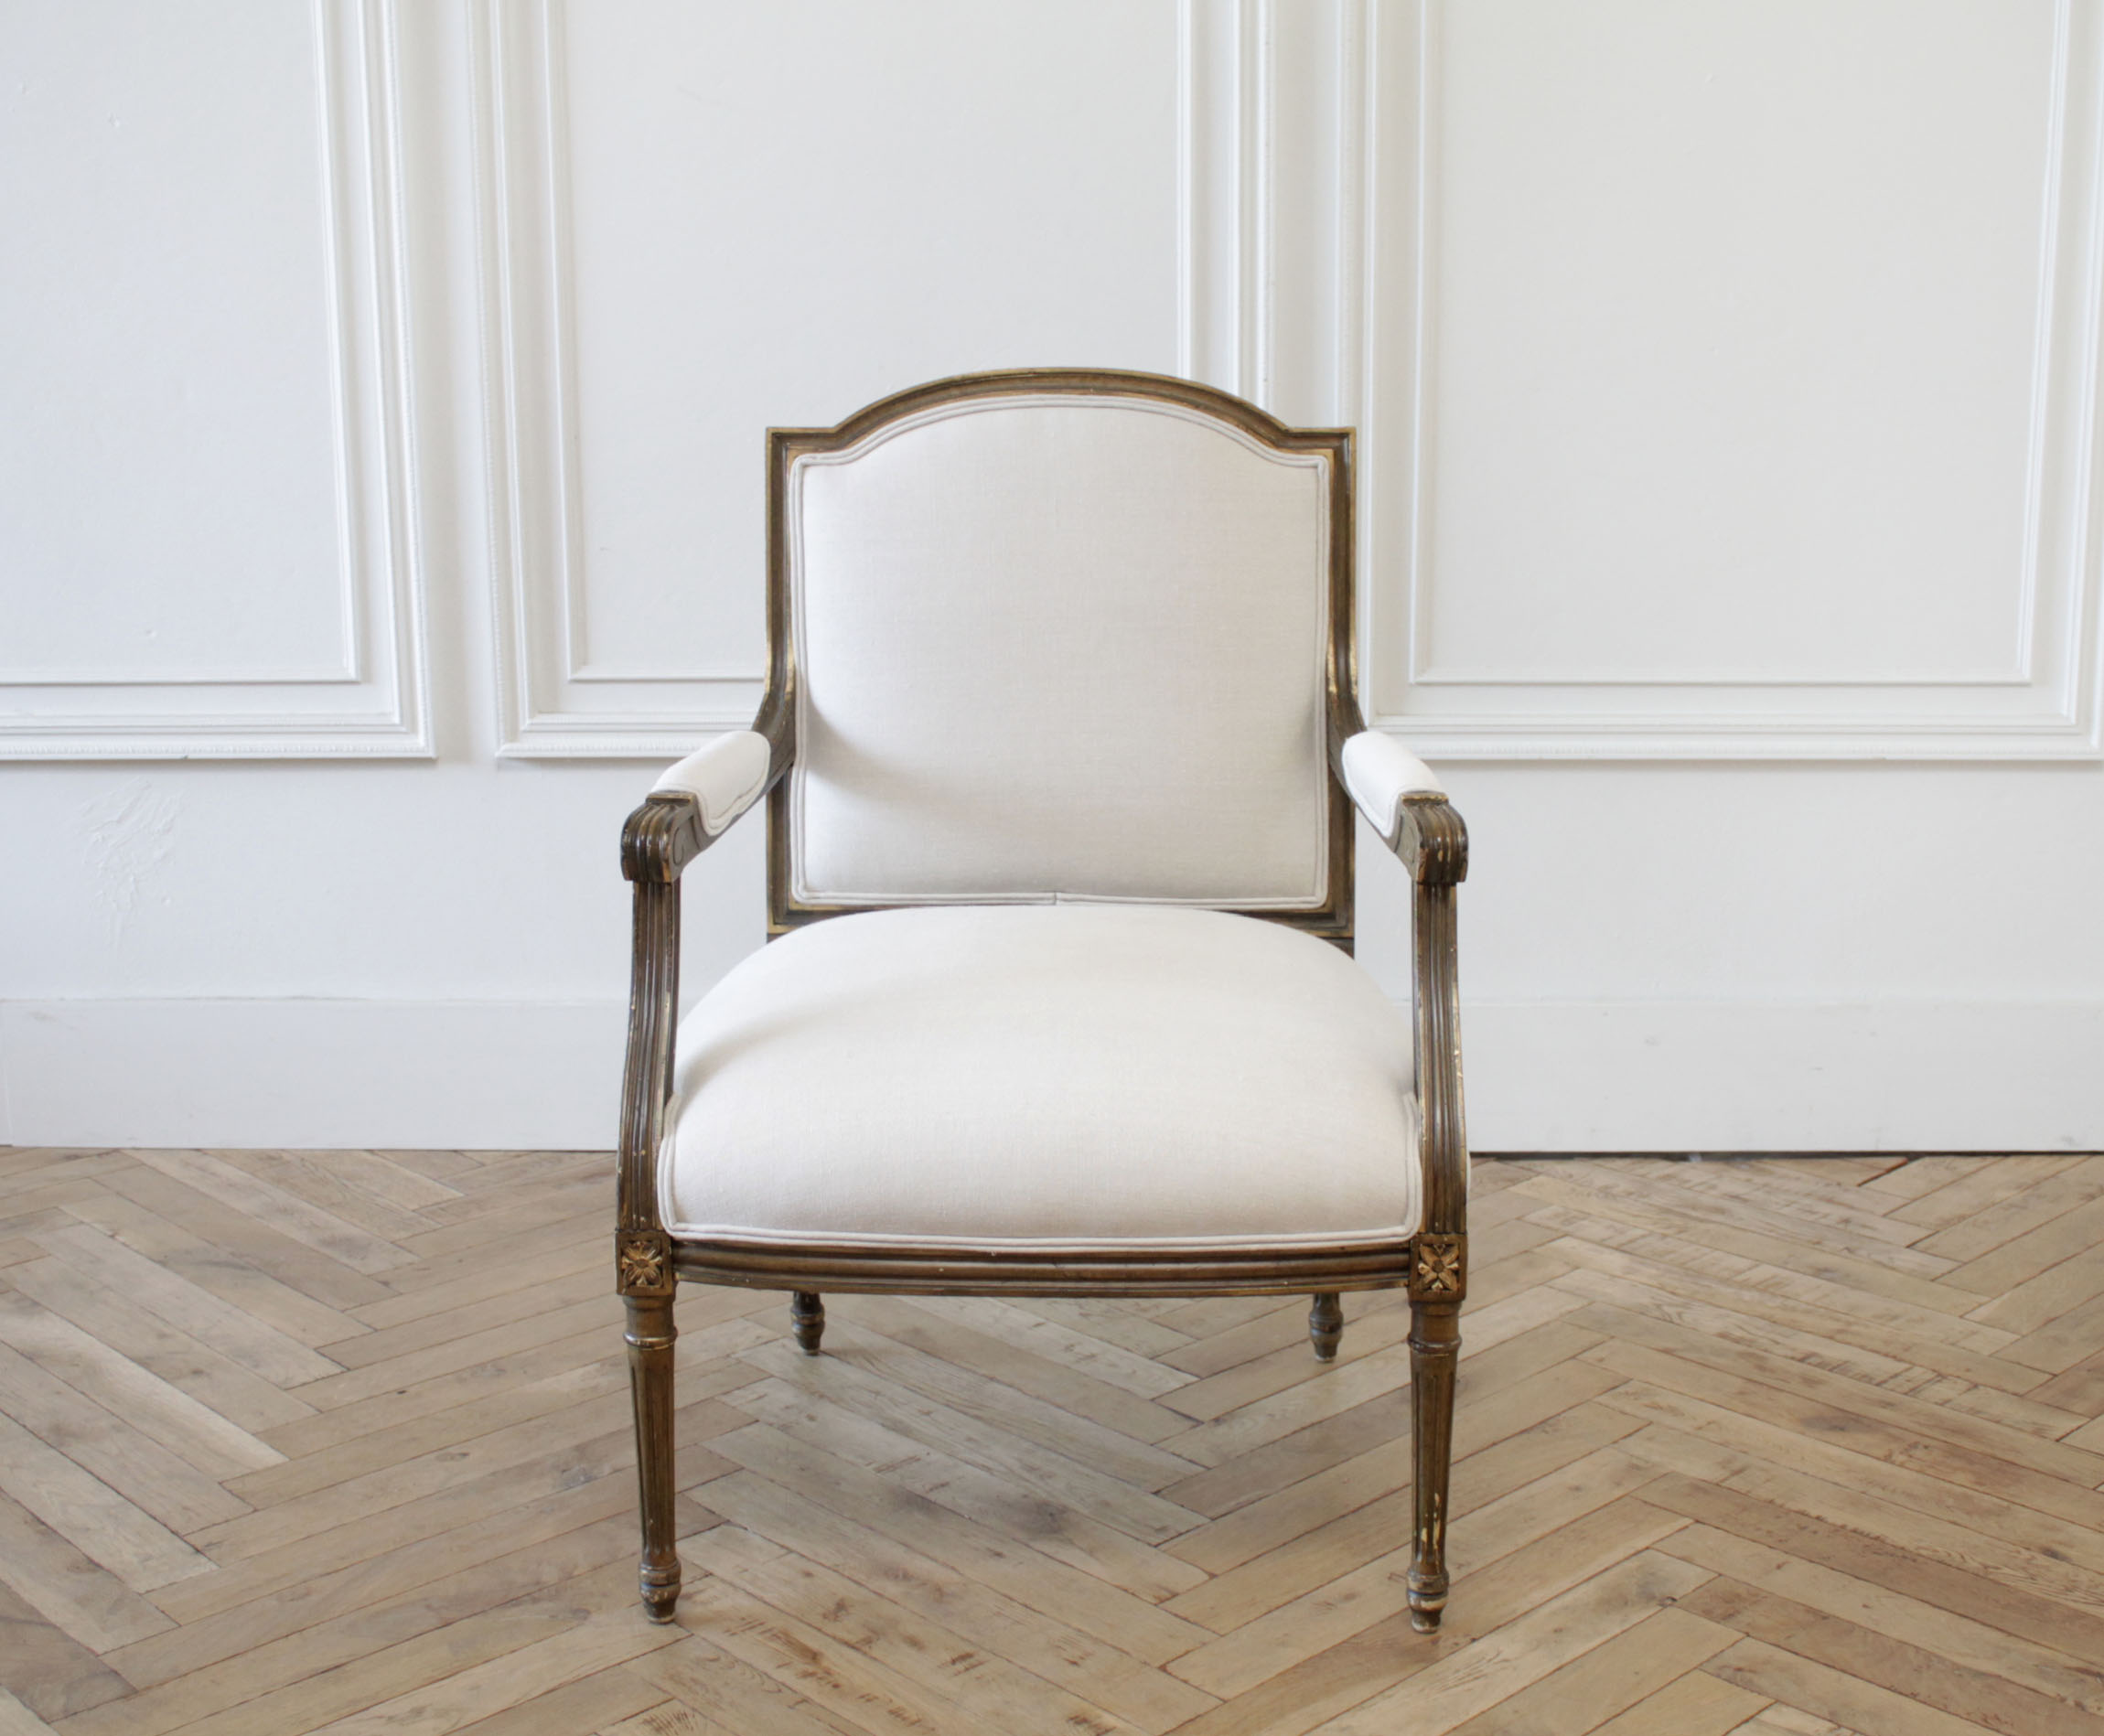 20th Century Original Finish Giltwood Patina Louis XVI Style Open Armchair